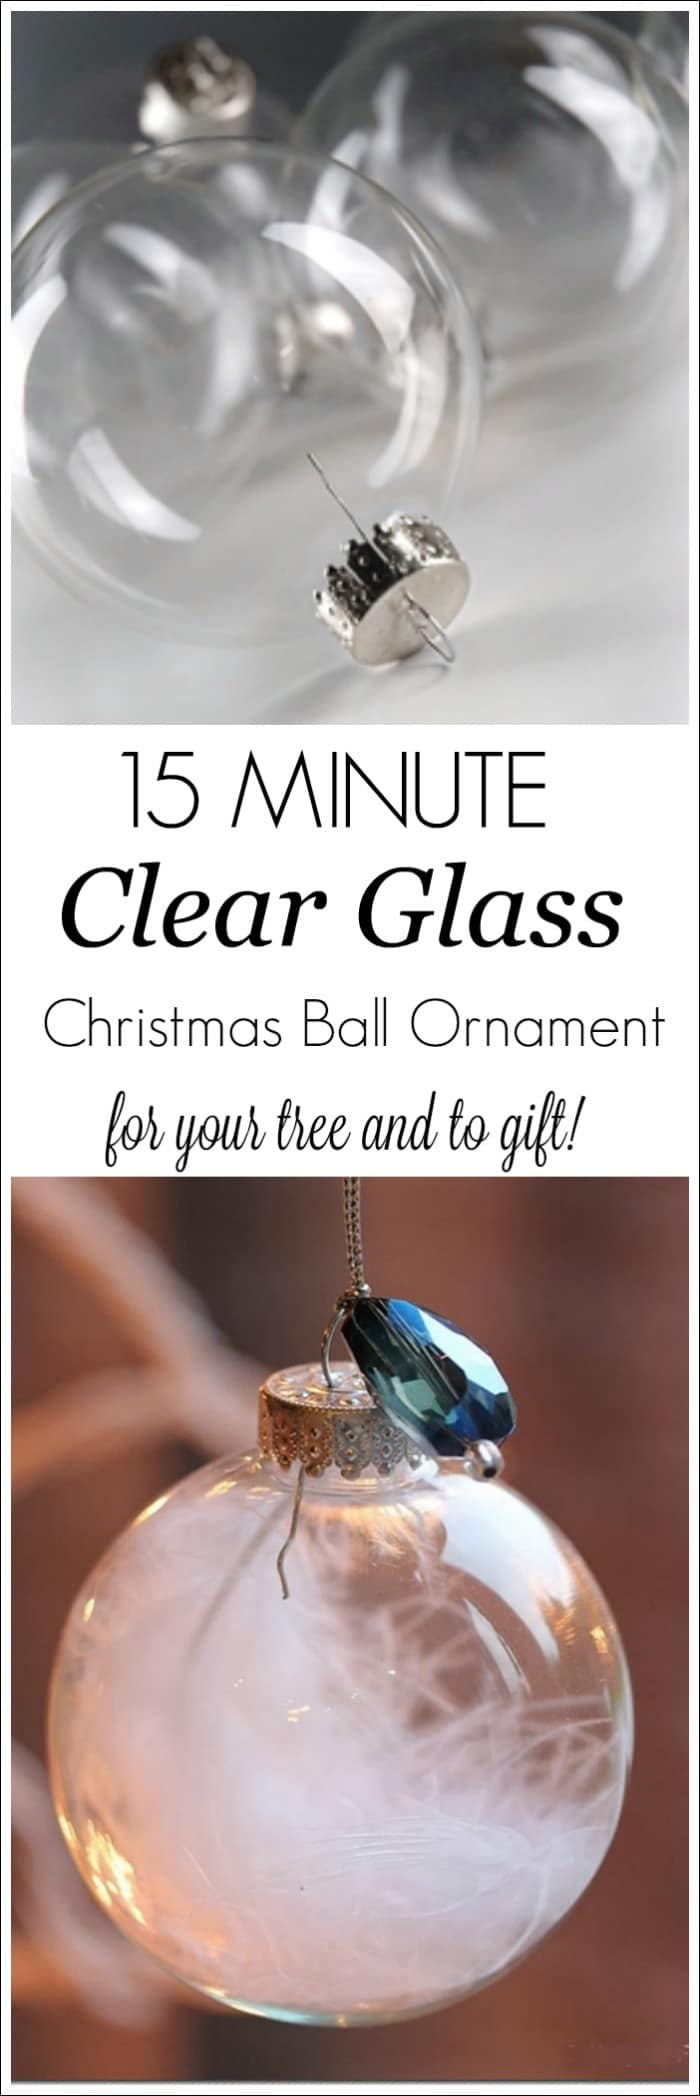 15 minute Clear Glass Christmas ball ornament for your tree and to gift! #diy #christmas #christmasornament #ballornament #crafts #Christmascrafts #christmastree #christmasdecor #Christmasgifts